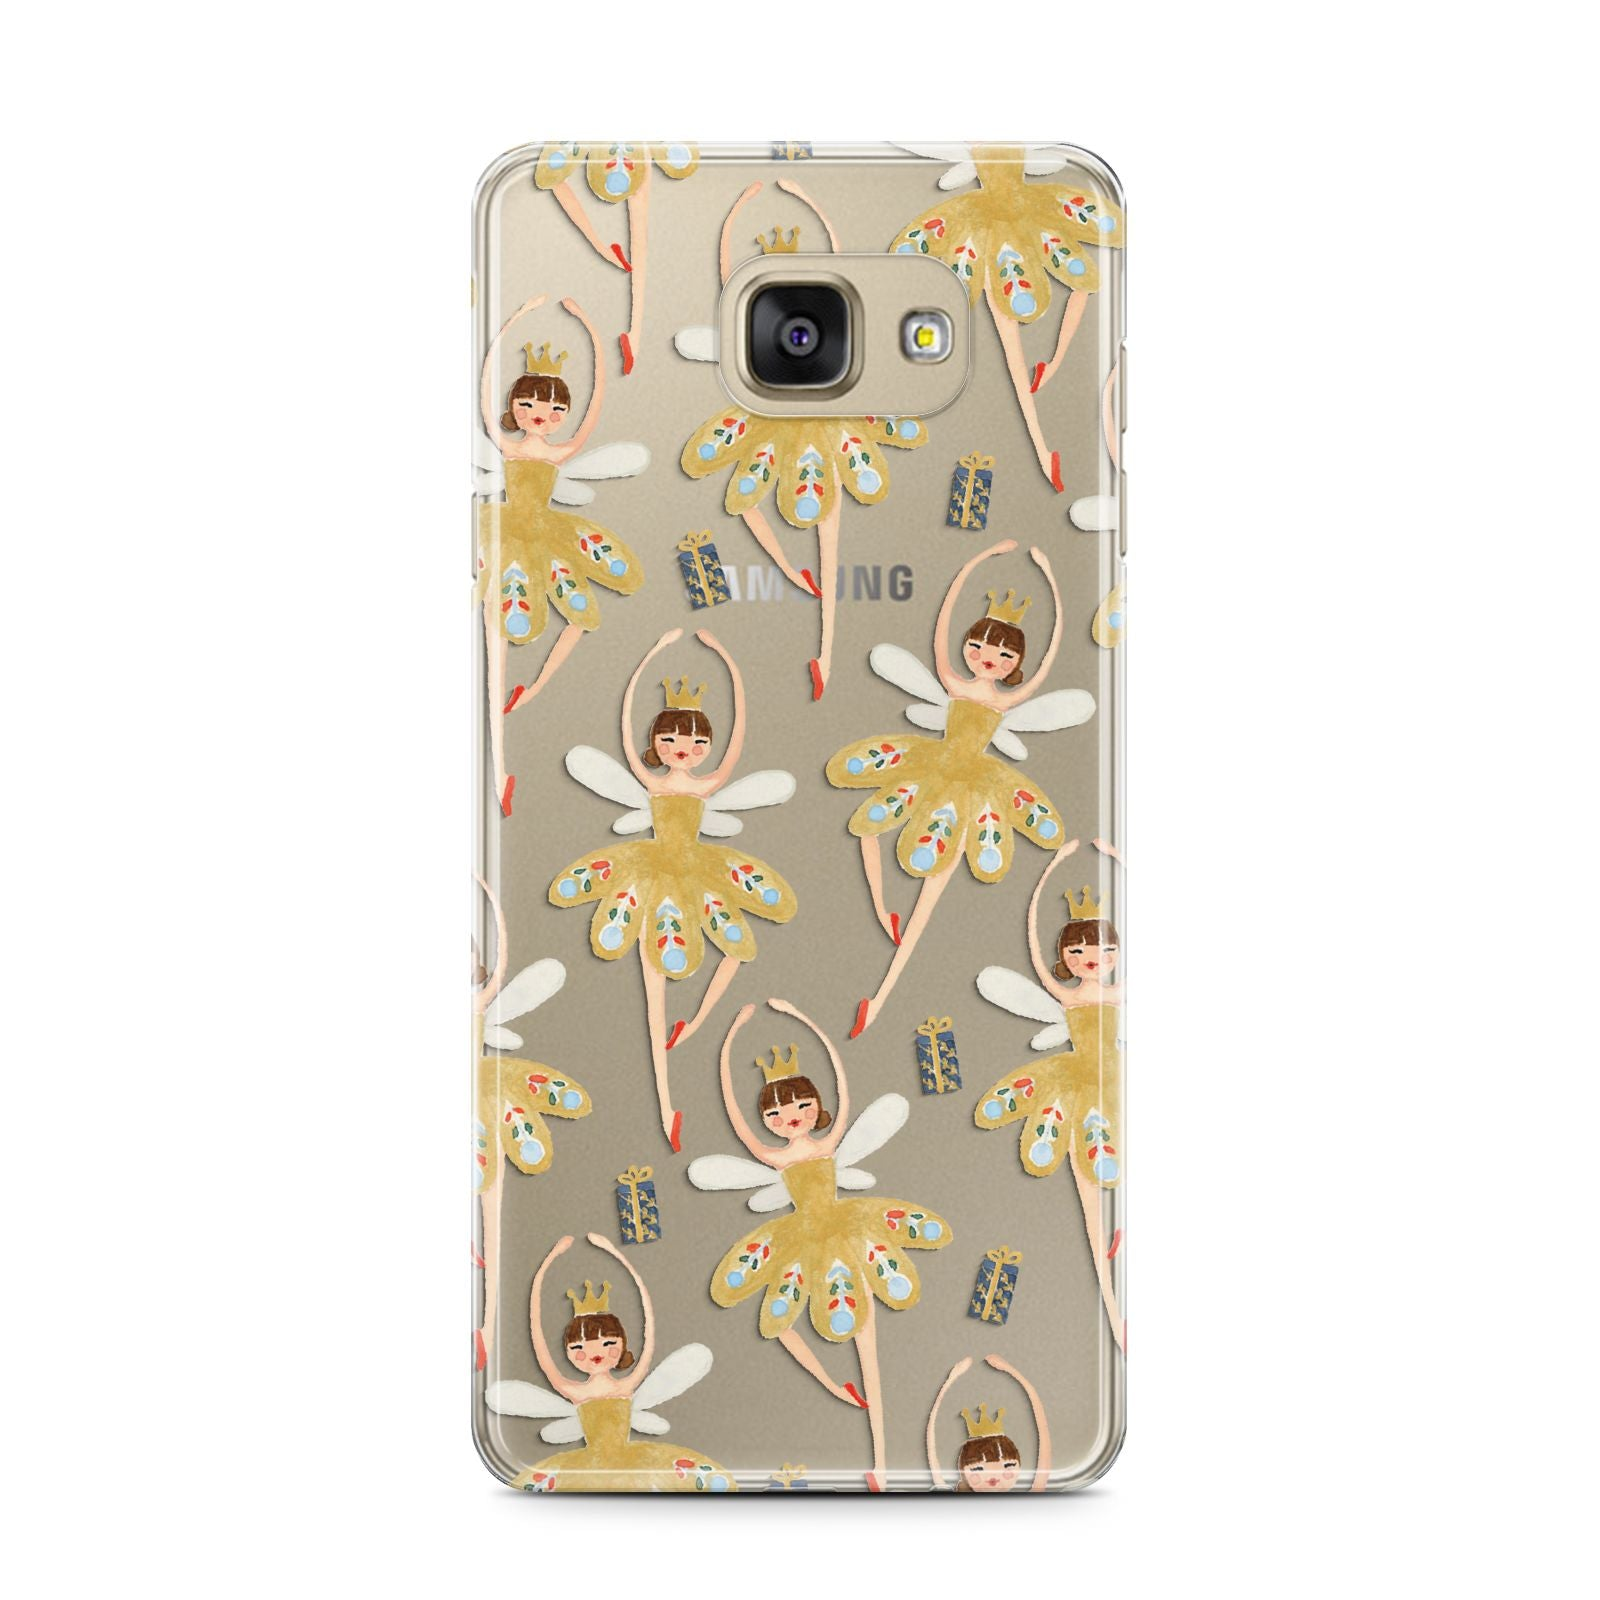 Dancing ballerina princess Samsung Galaxy A7 2016 Case on gold phone